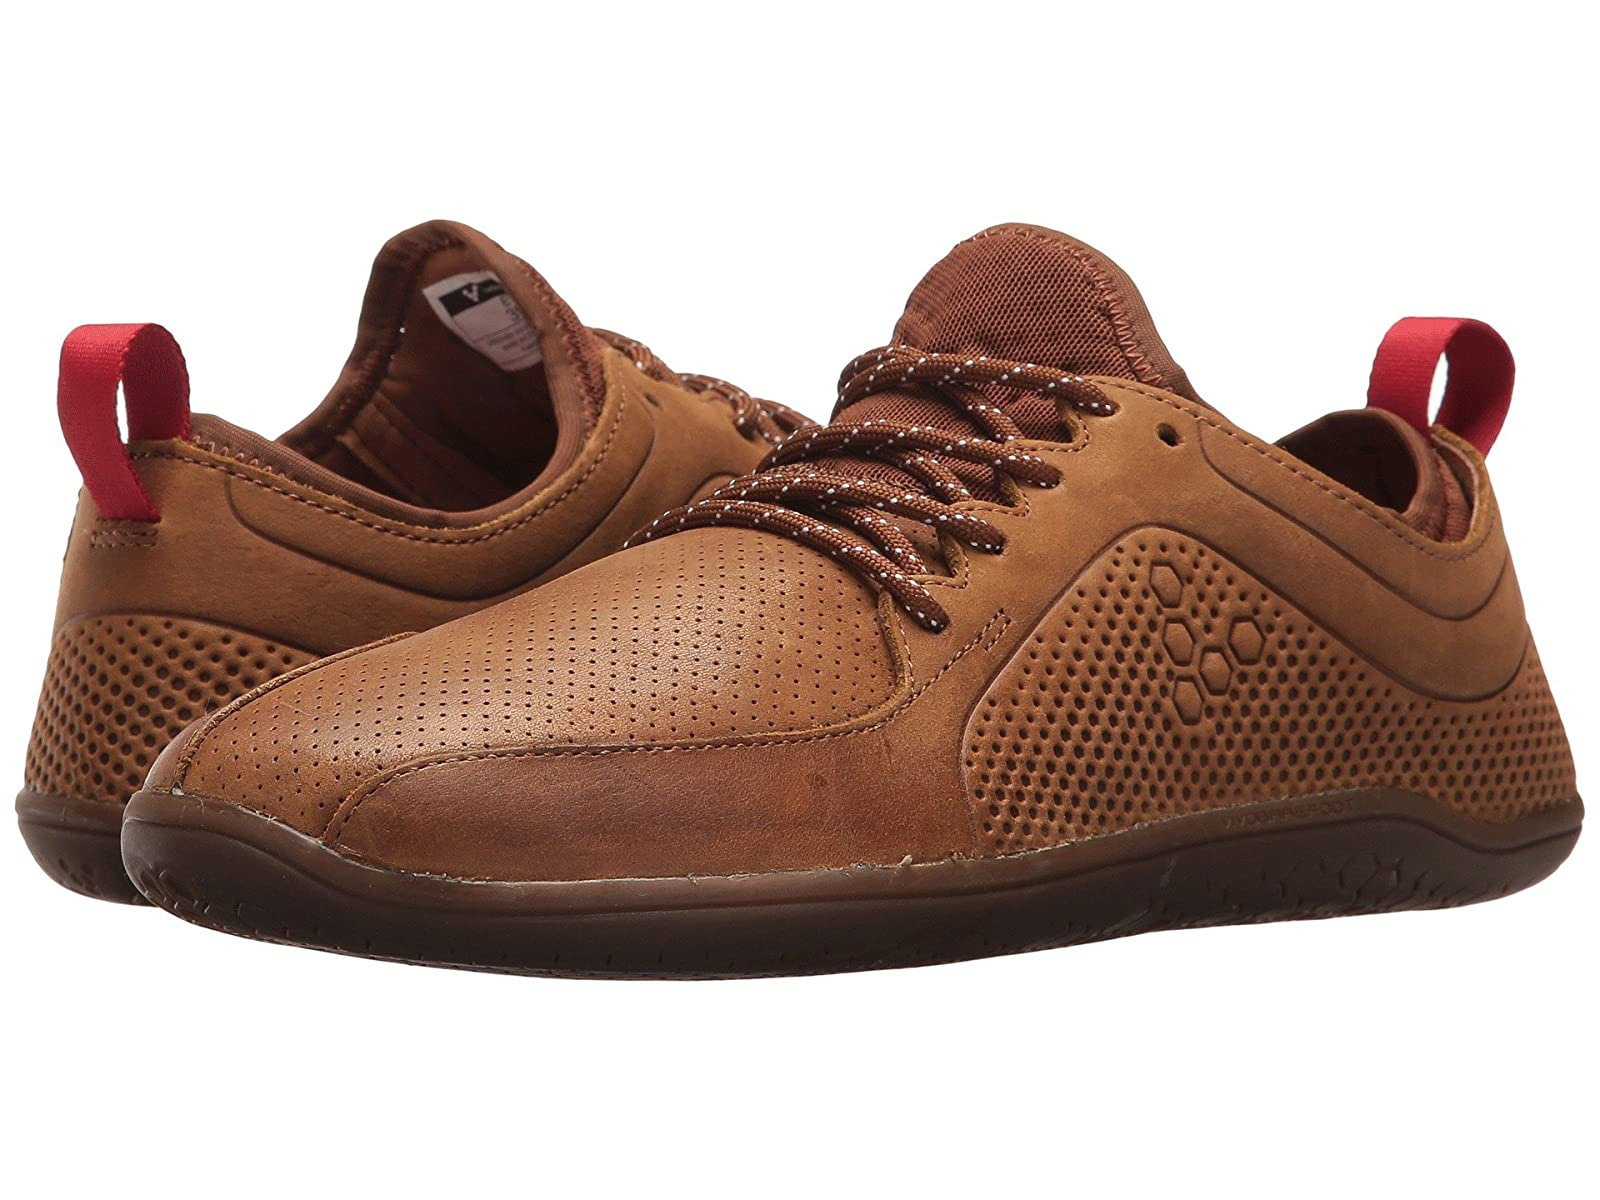 Vivobarefoot Primus Lux WP LeatherAtmospheric grades have affordable shoes